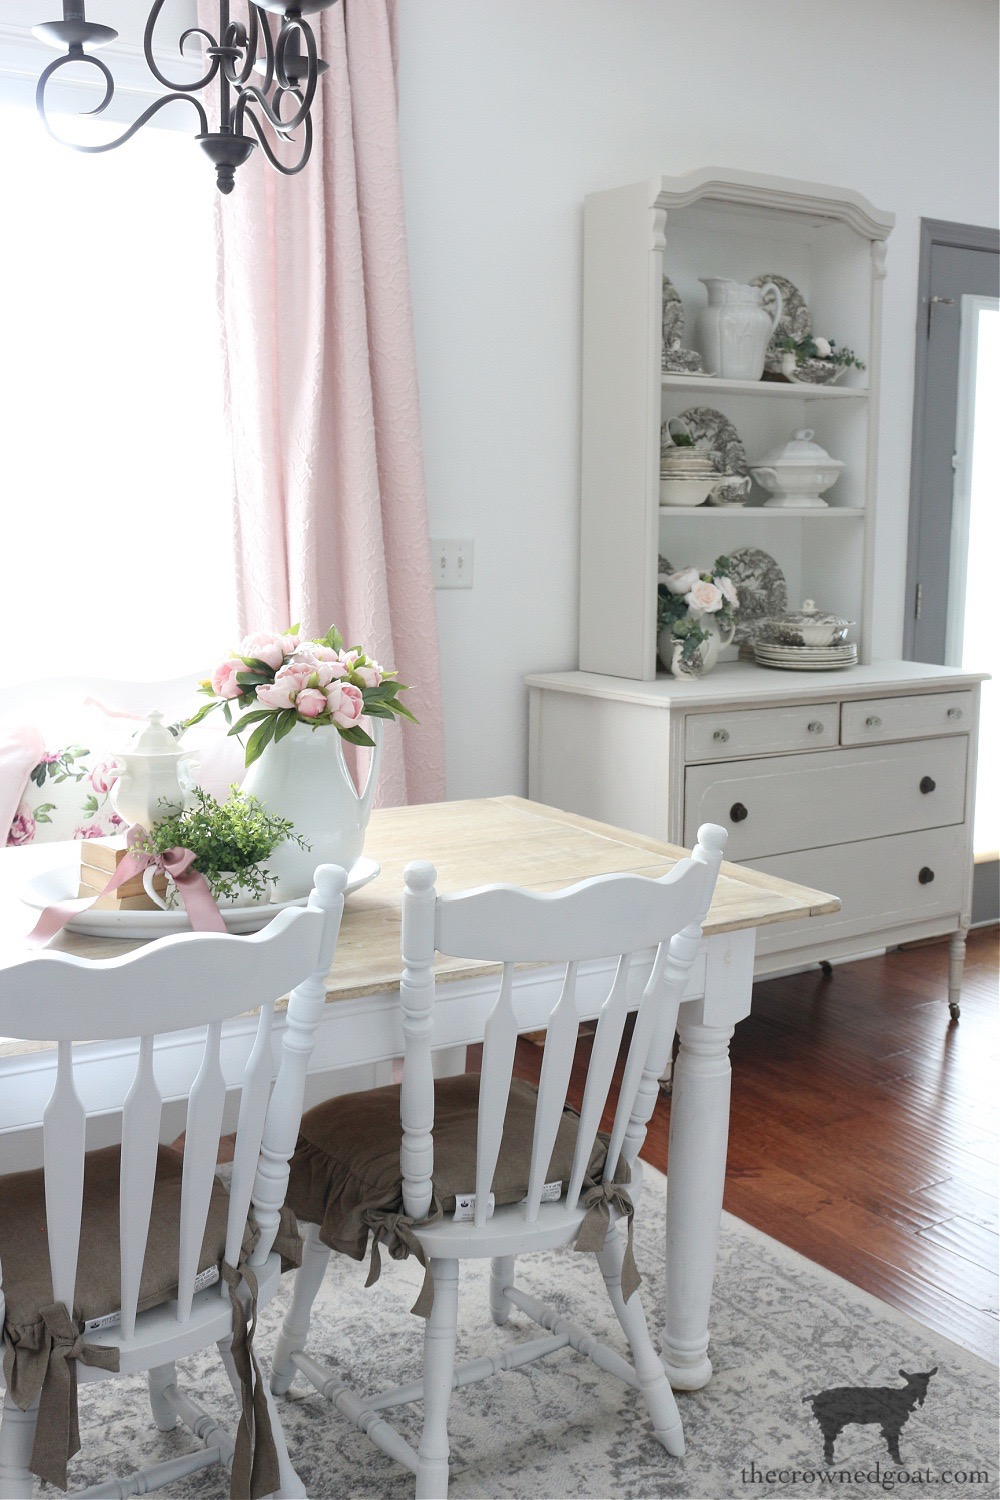 The Evolution of the Breakfast Nook-The Crowned Goat